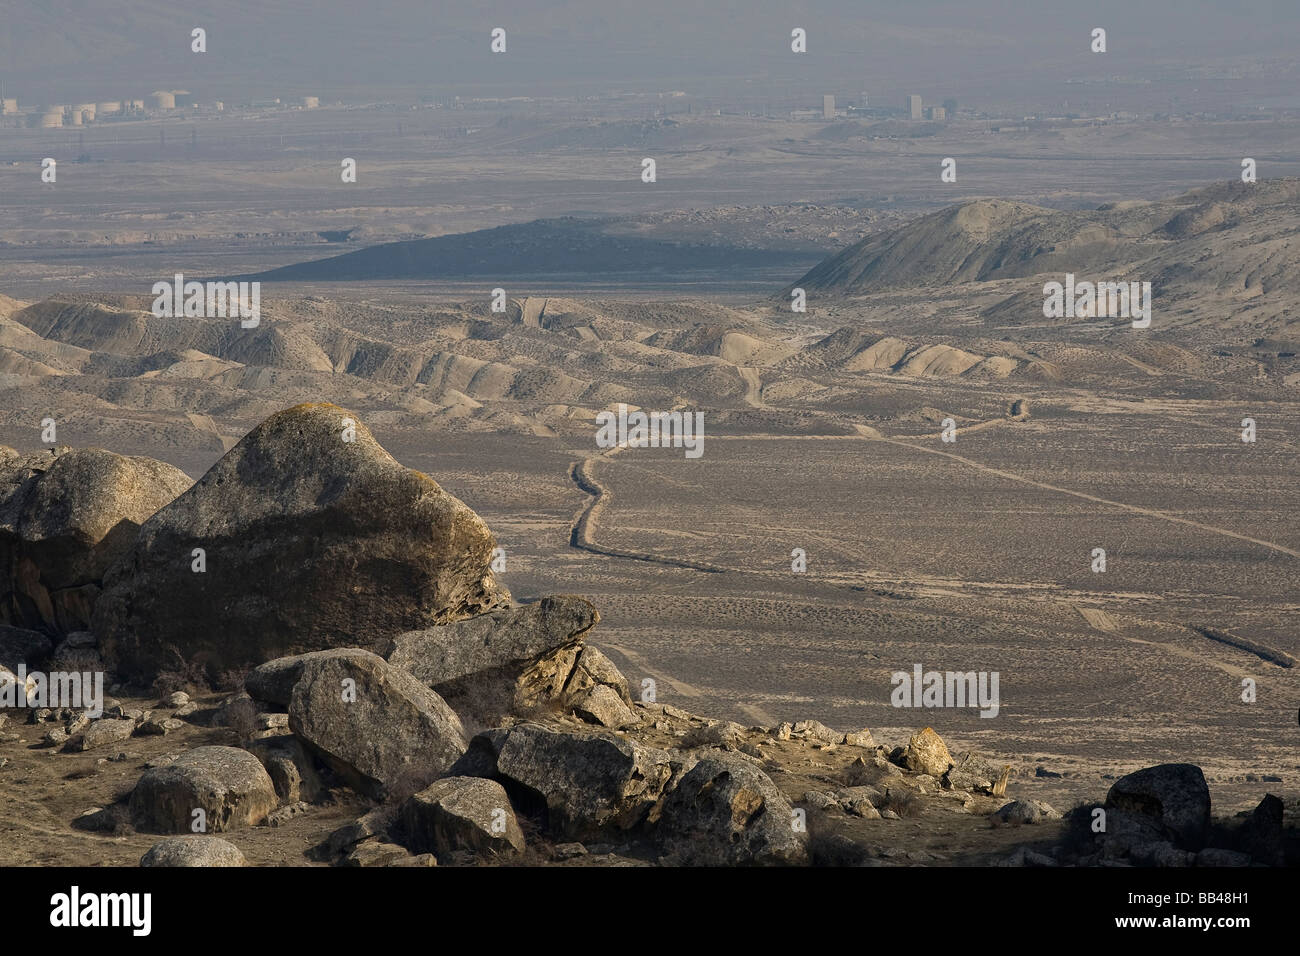 Barren landscape south of Qobustan, Azerbaijan. - Stock Image